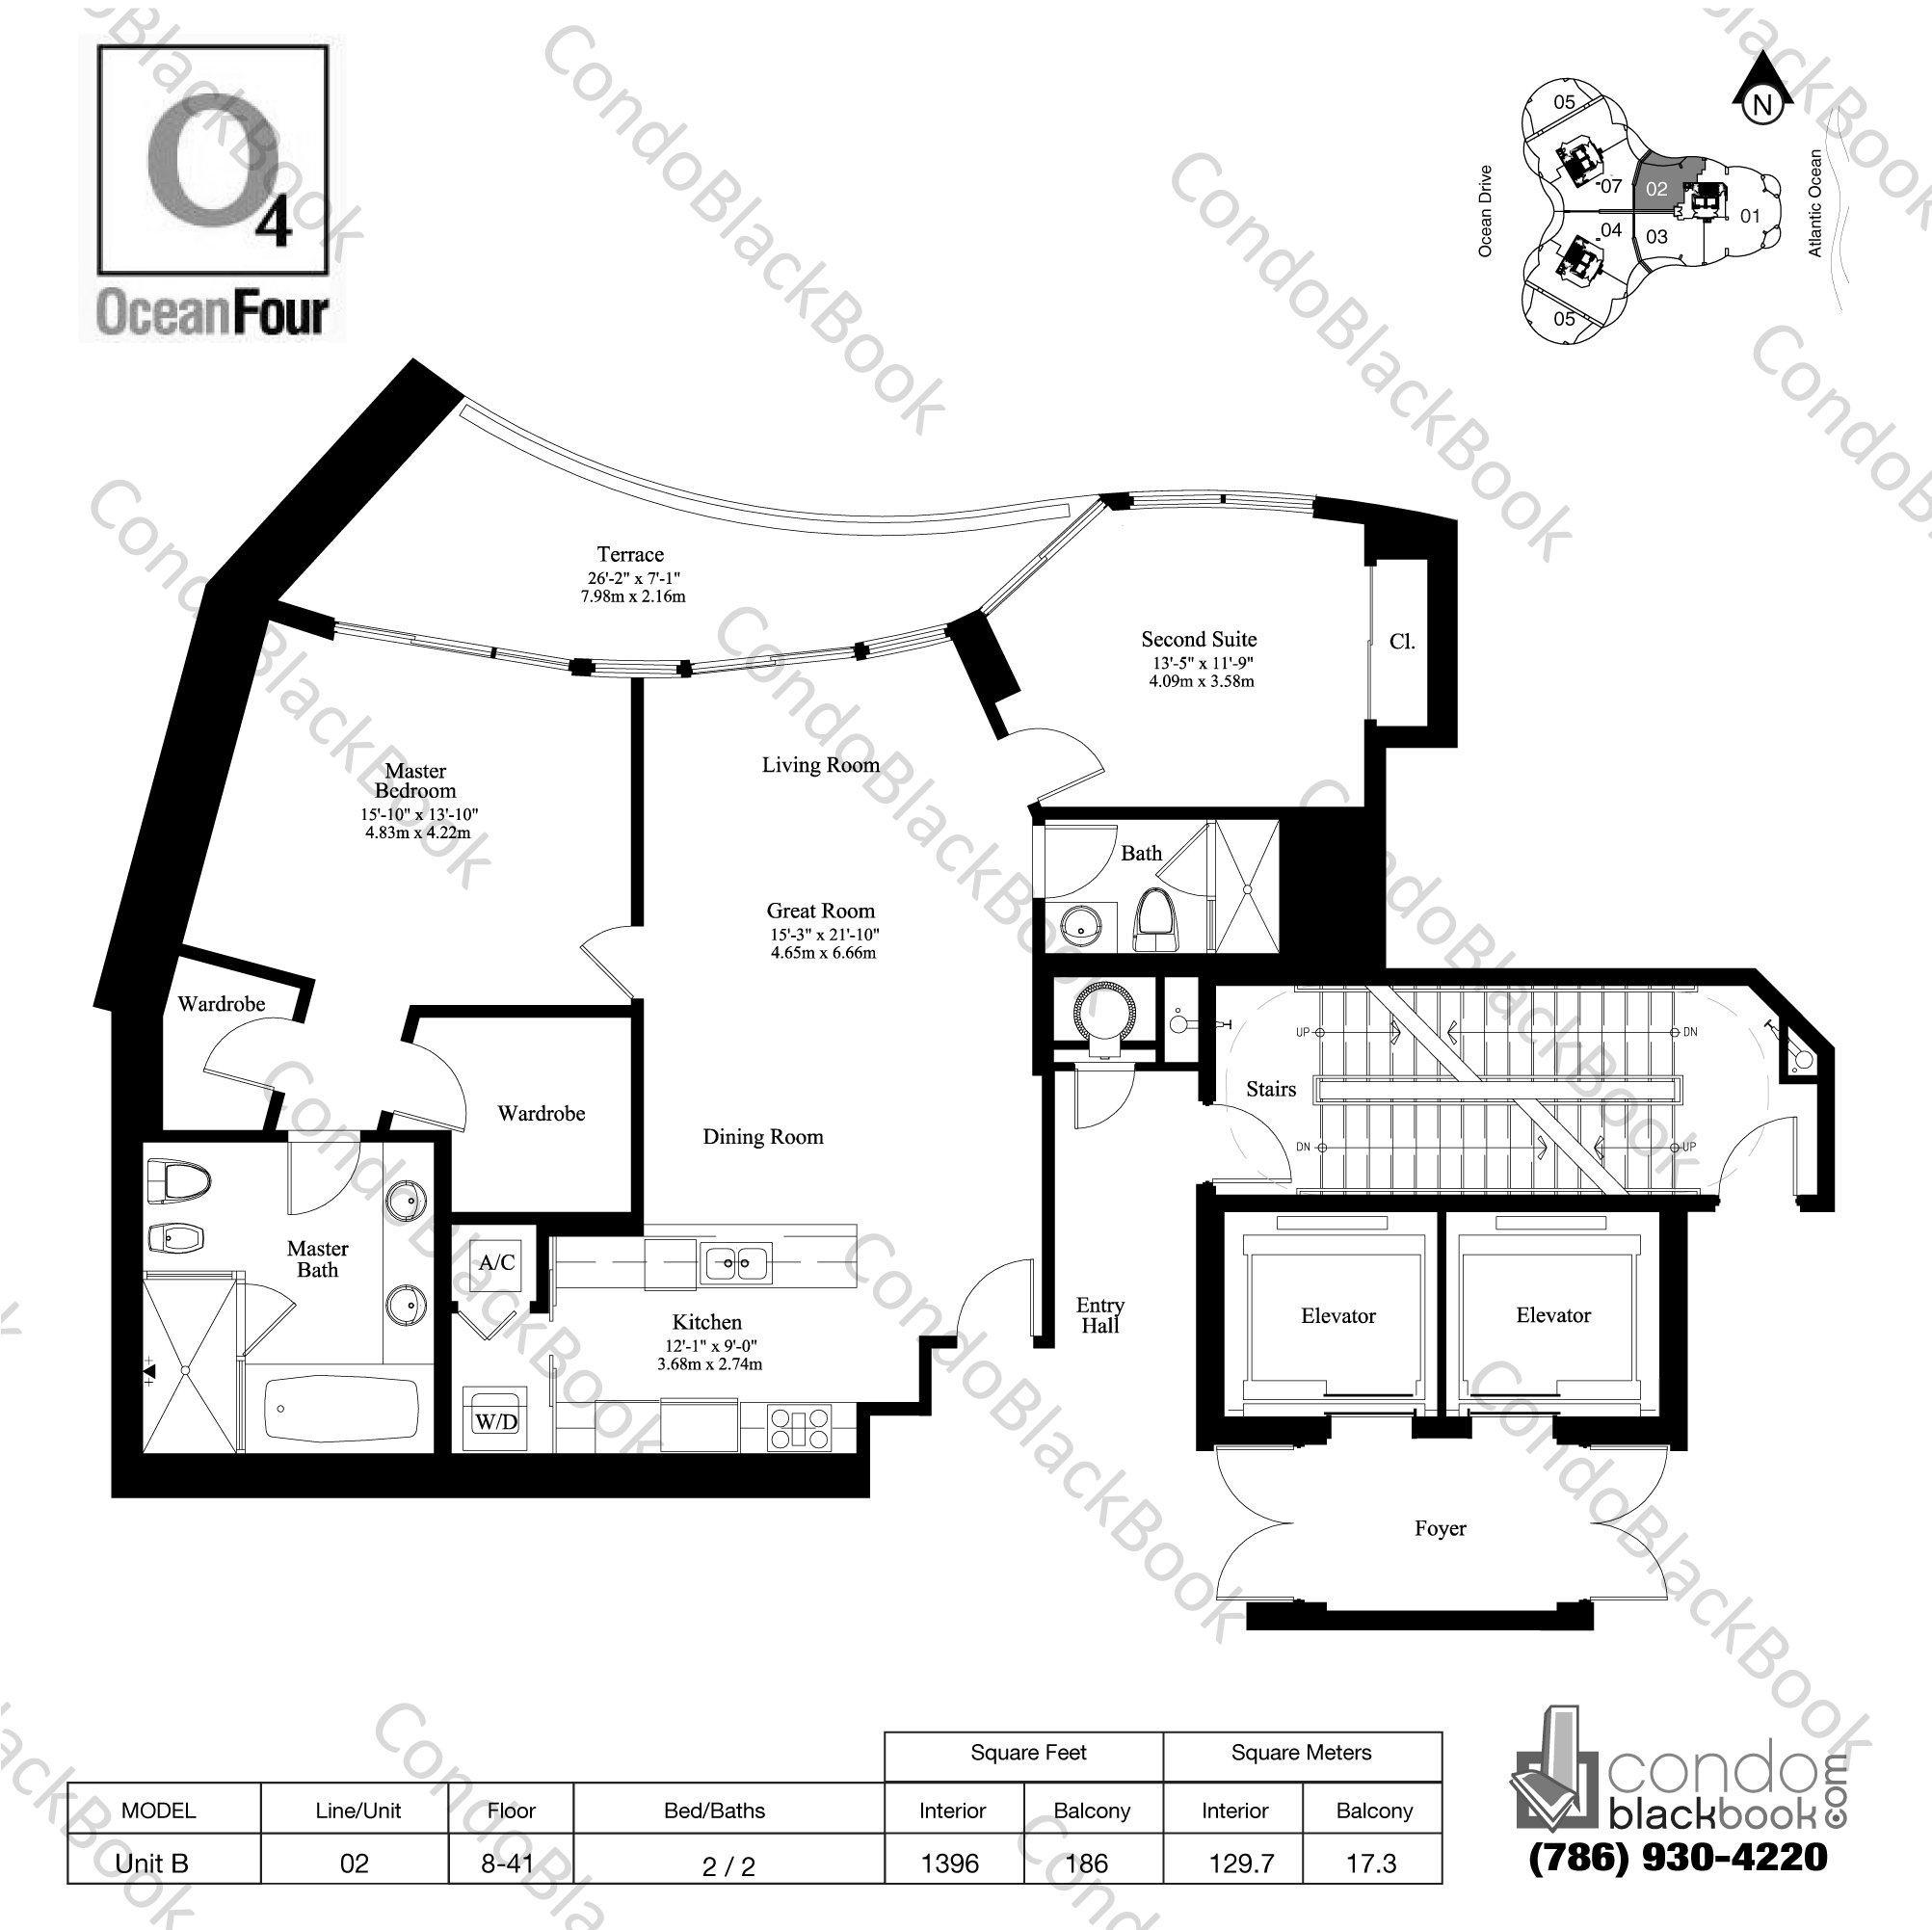 Floor plan for Ocean Four Sunny Isles Beach, model Unit B, line 02, 2 / 2 bedrooms, 1396 sq ft